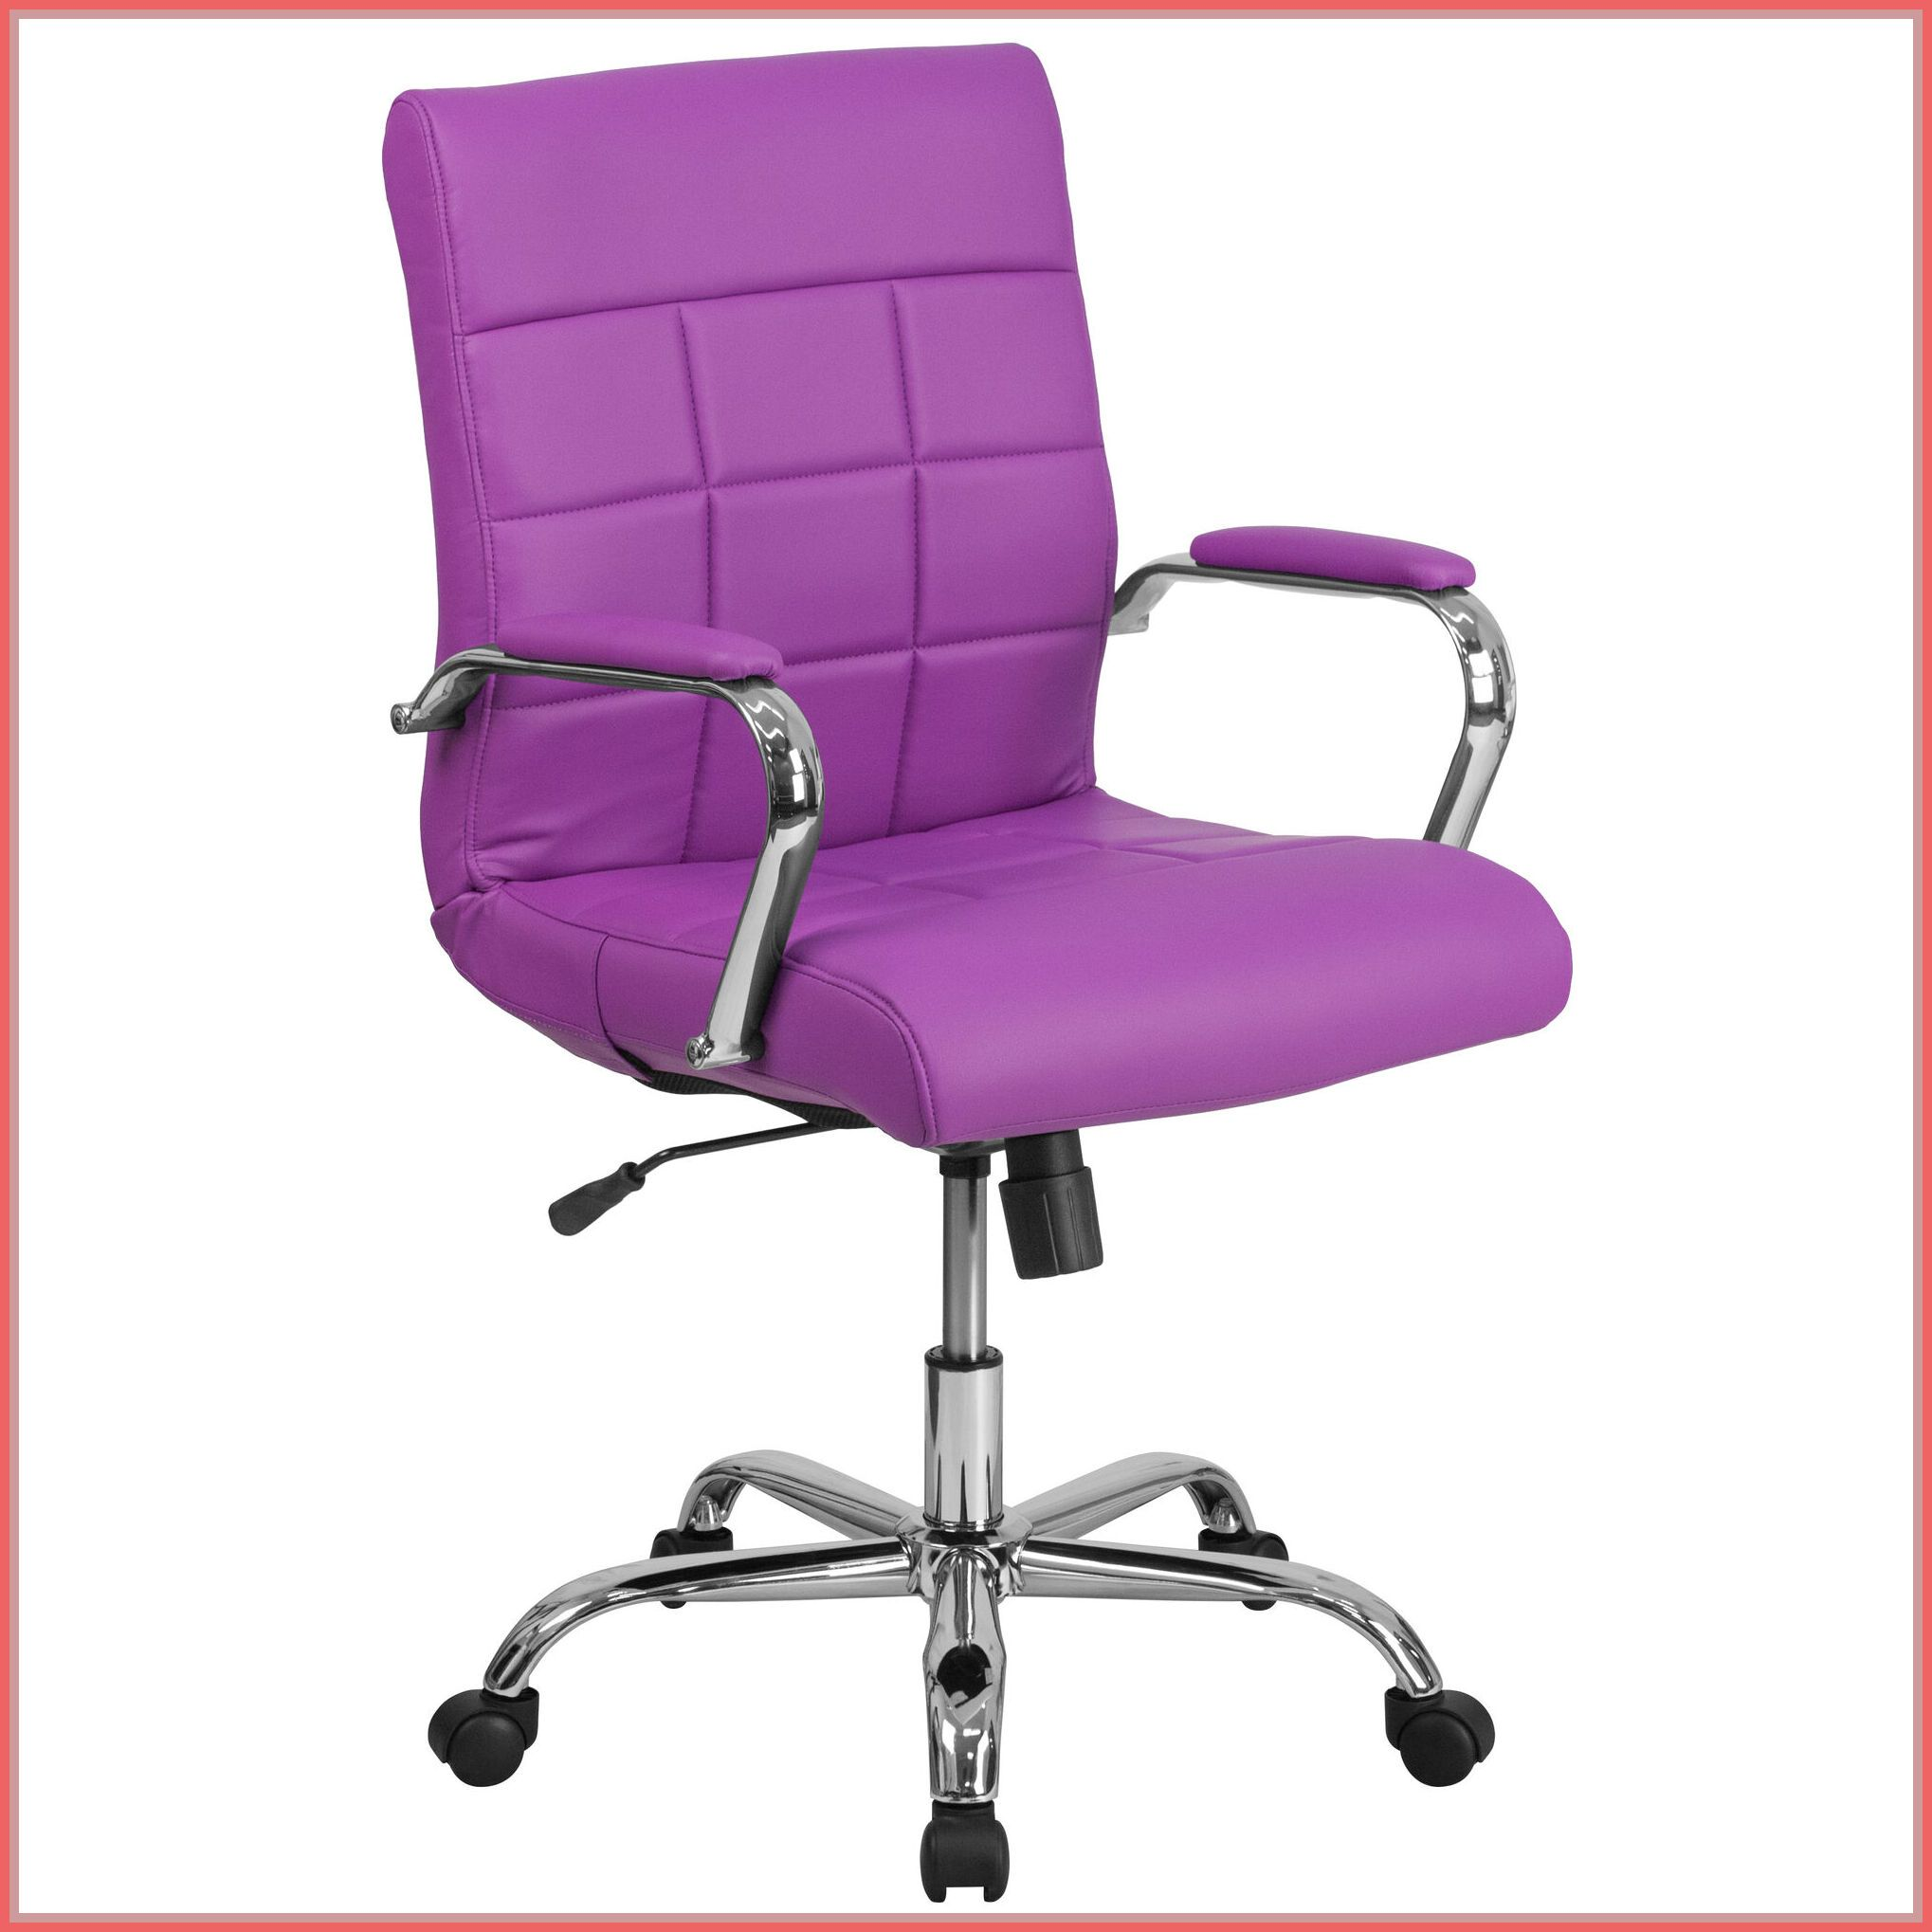 41 Reference Of Black Computer Chair With Arms In 2020 Swivel Office Chair Contemporary Office Chairs Computer Chair